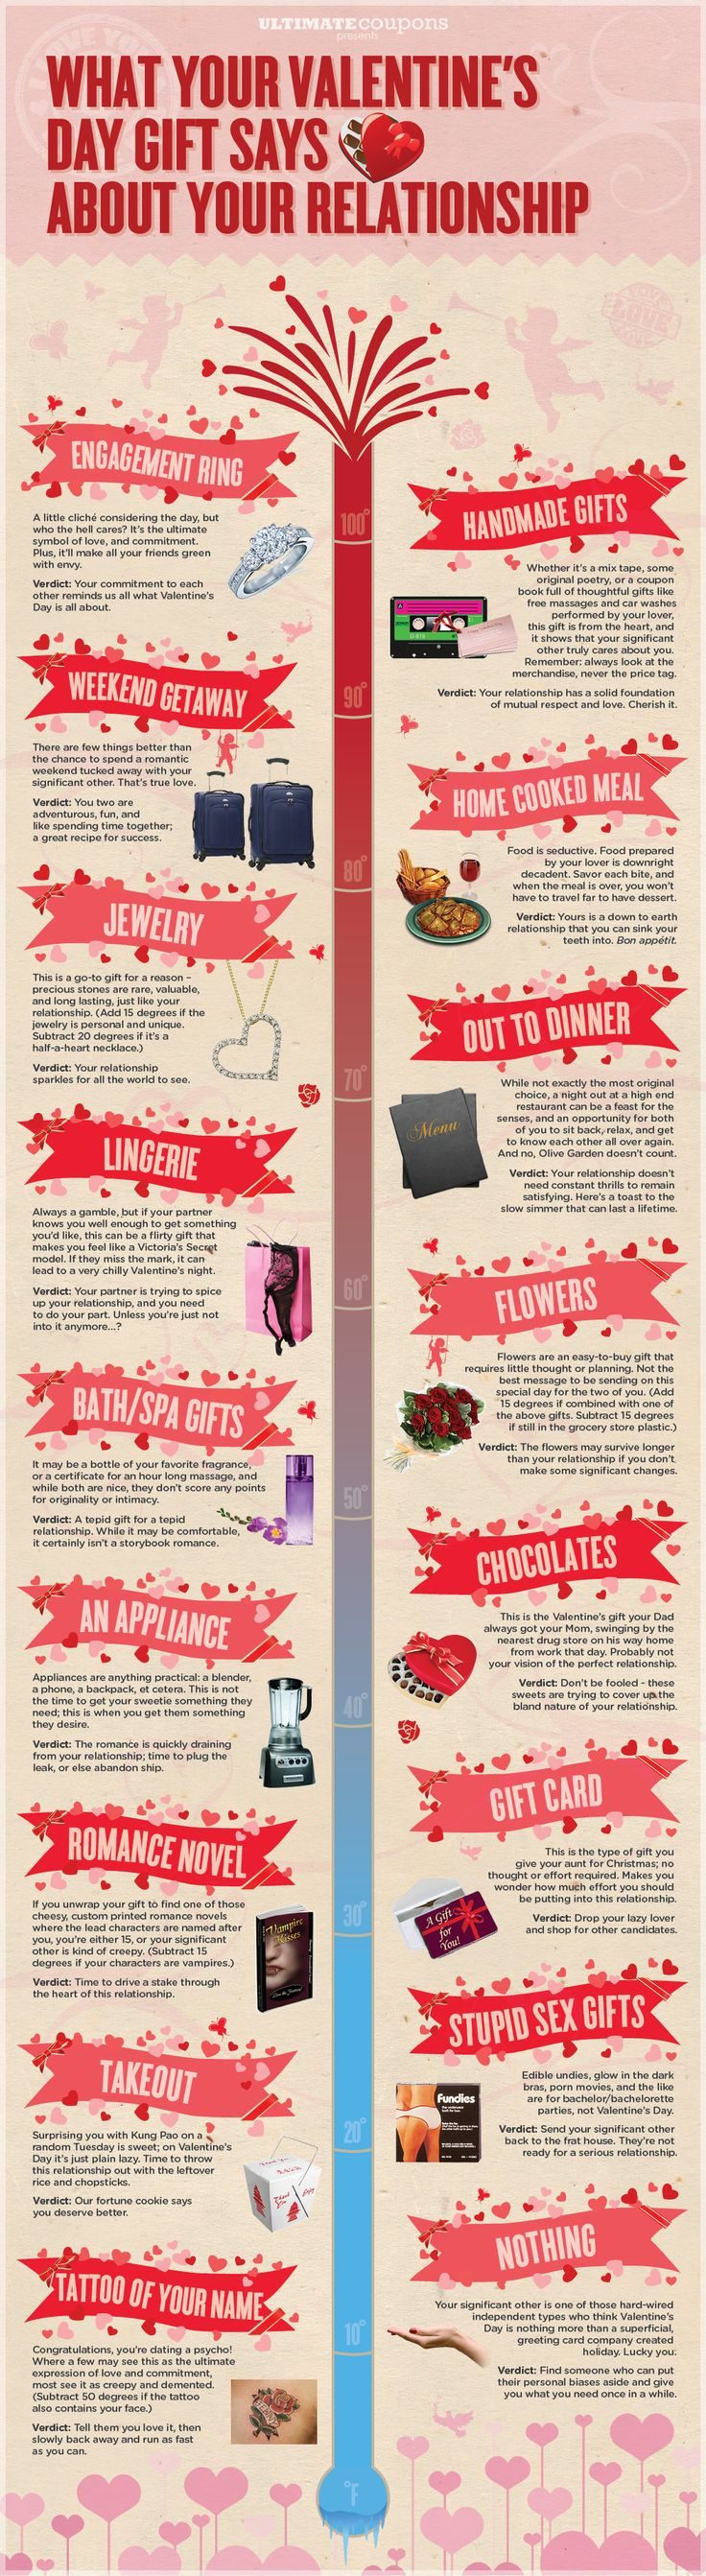 What your Valentine's Day gift says about your relationship  #valentineday #valentinesgift